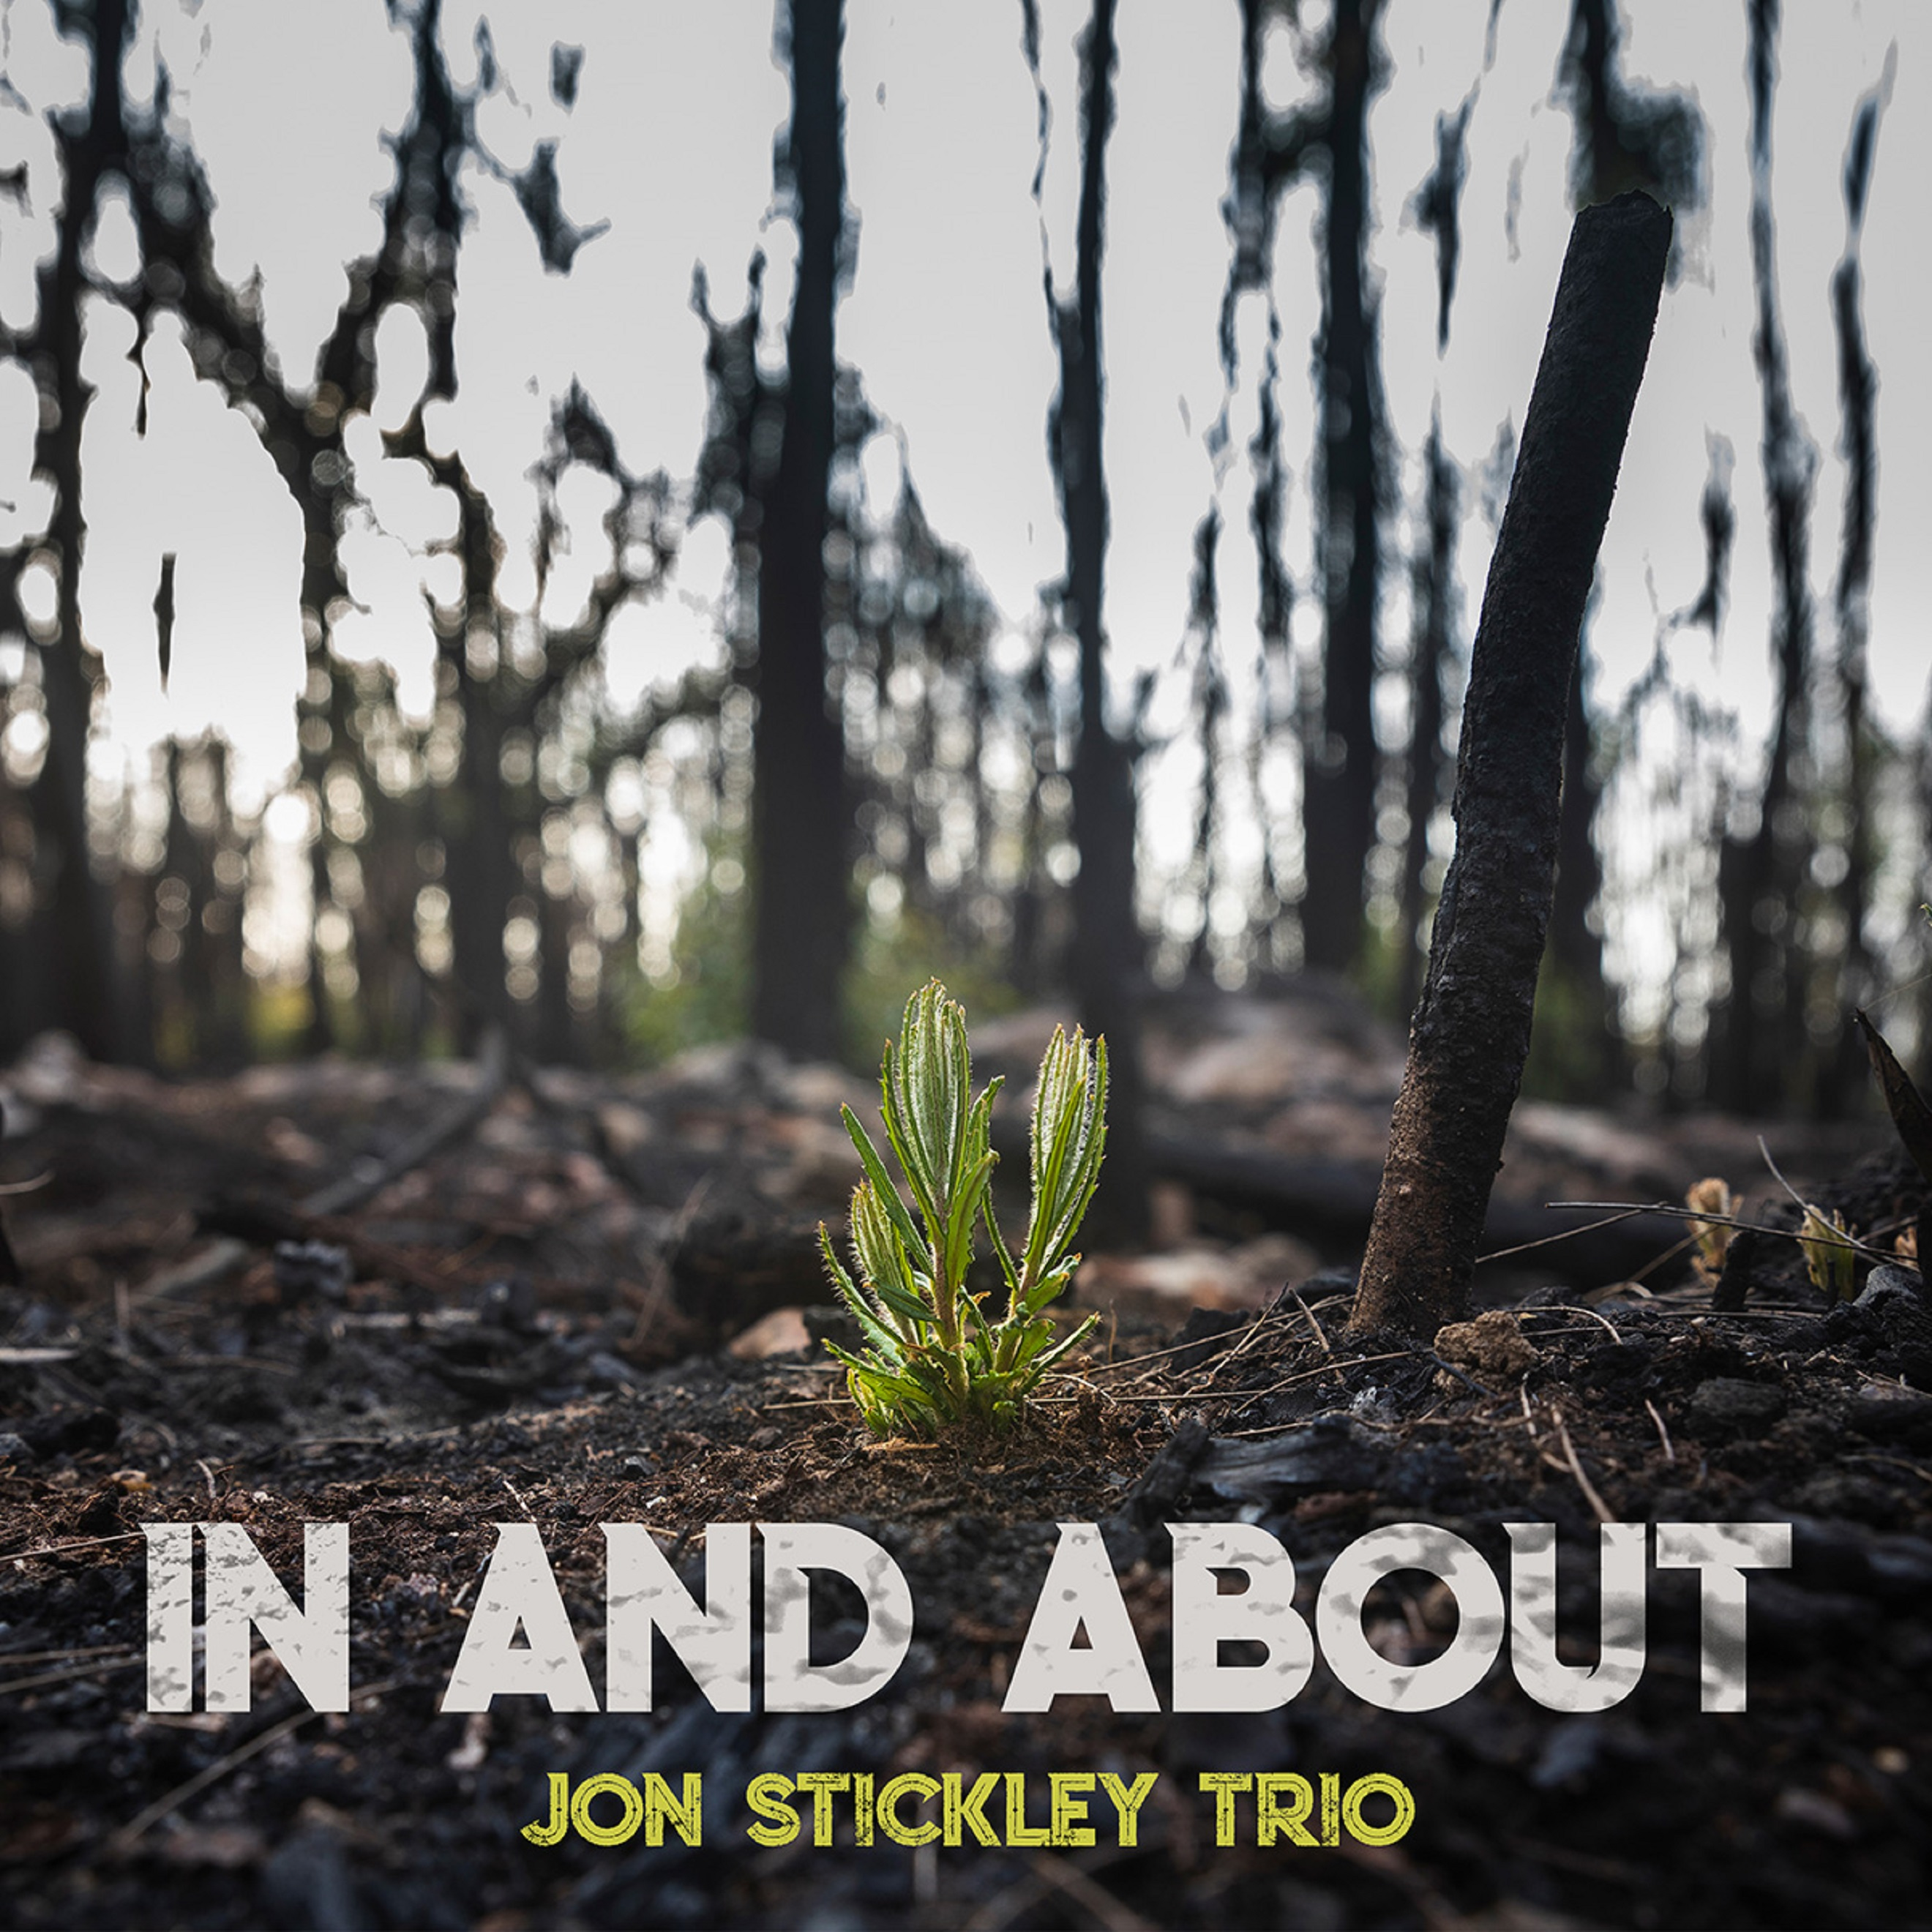 Jon Stickley Trio's 'In And About' captures shifting states of mind